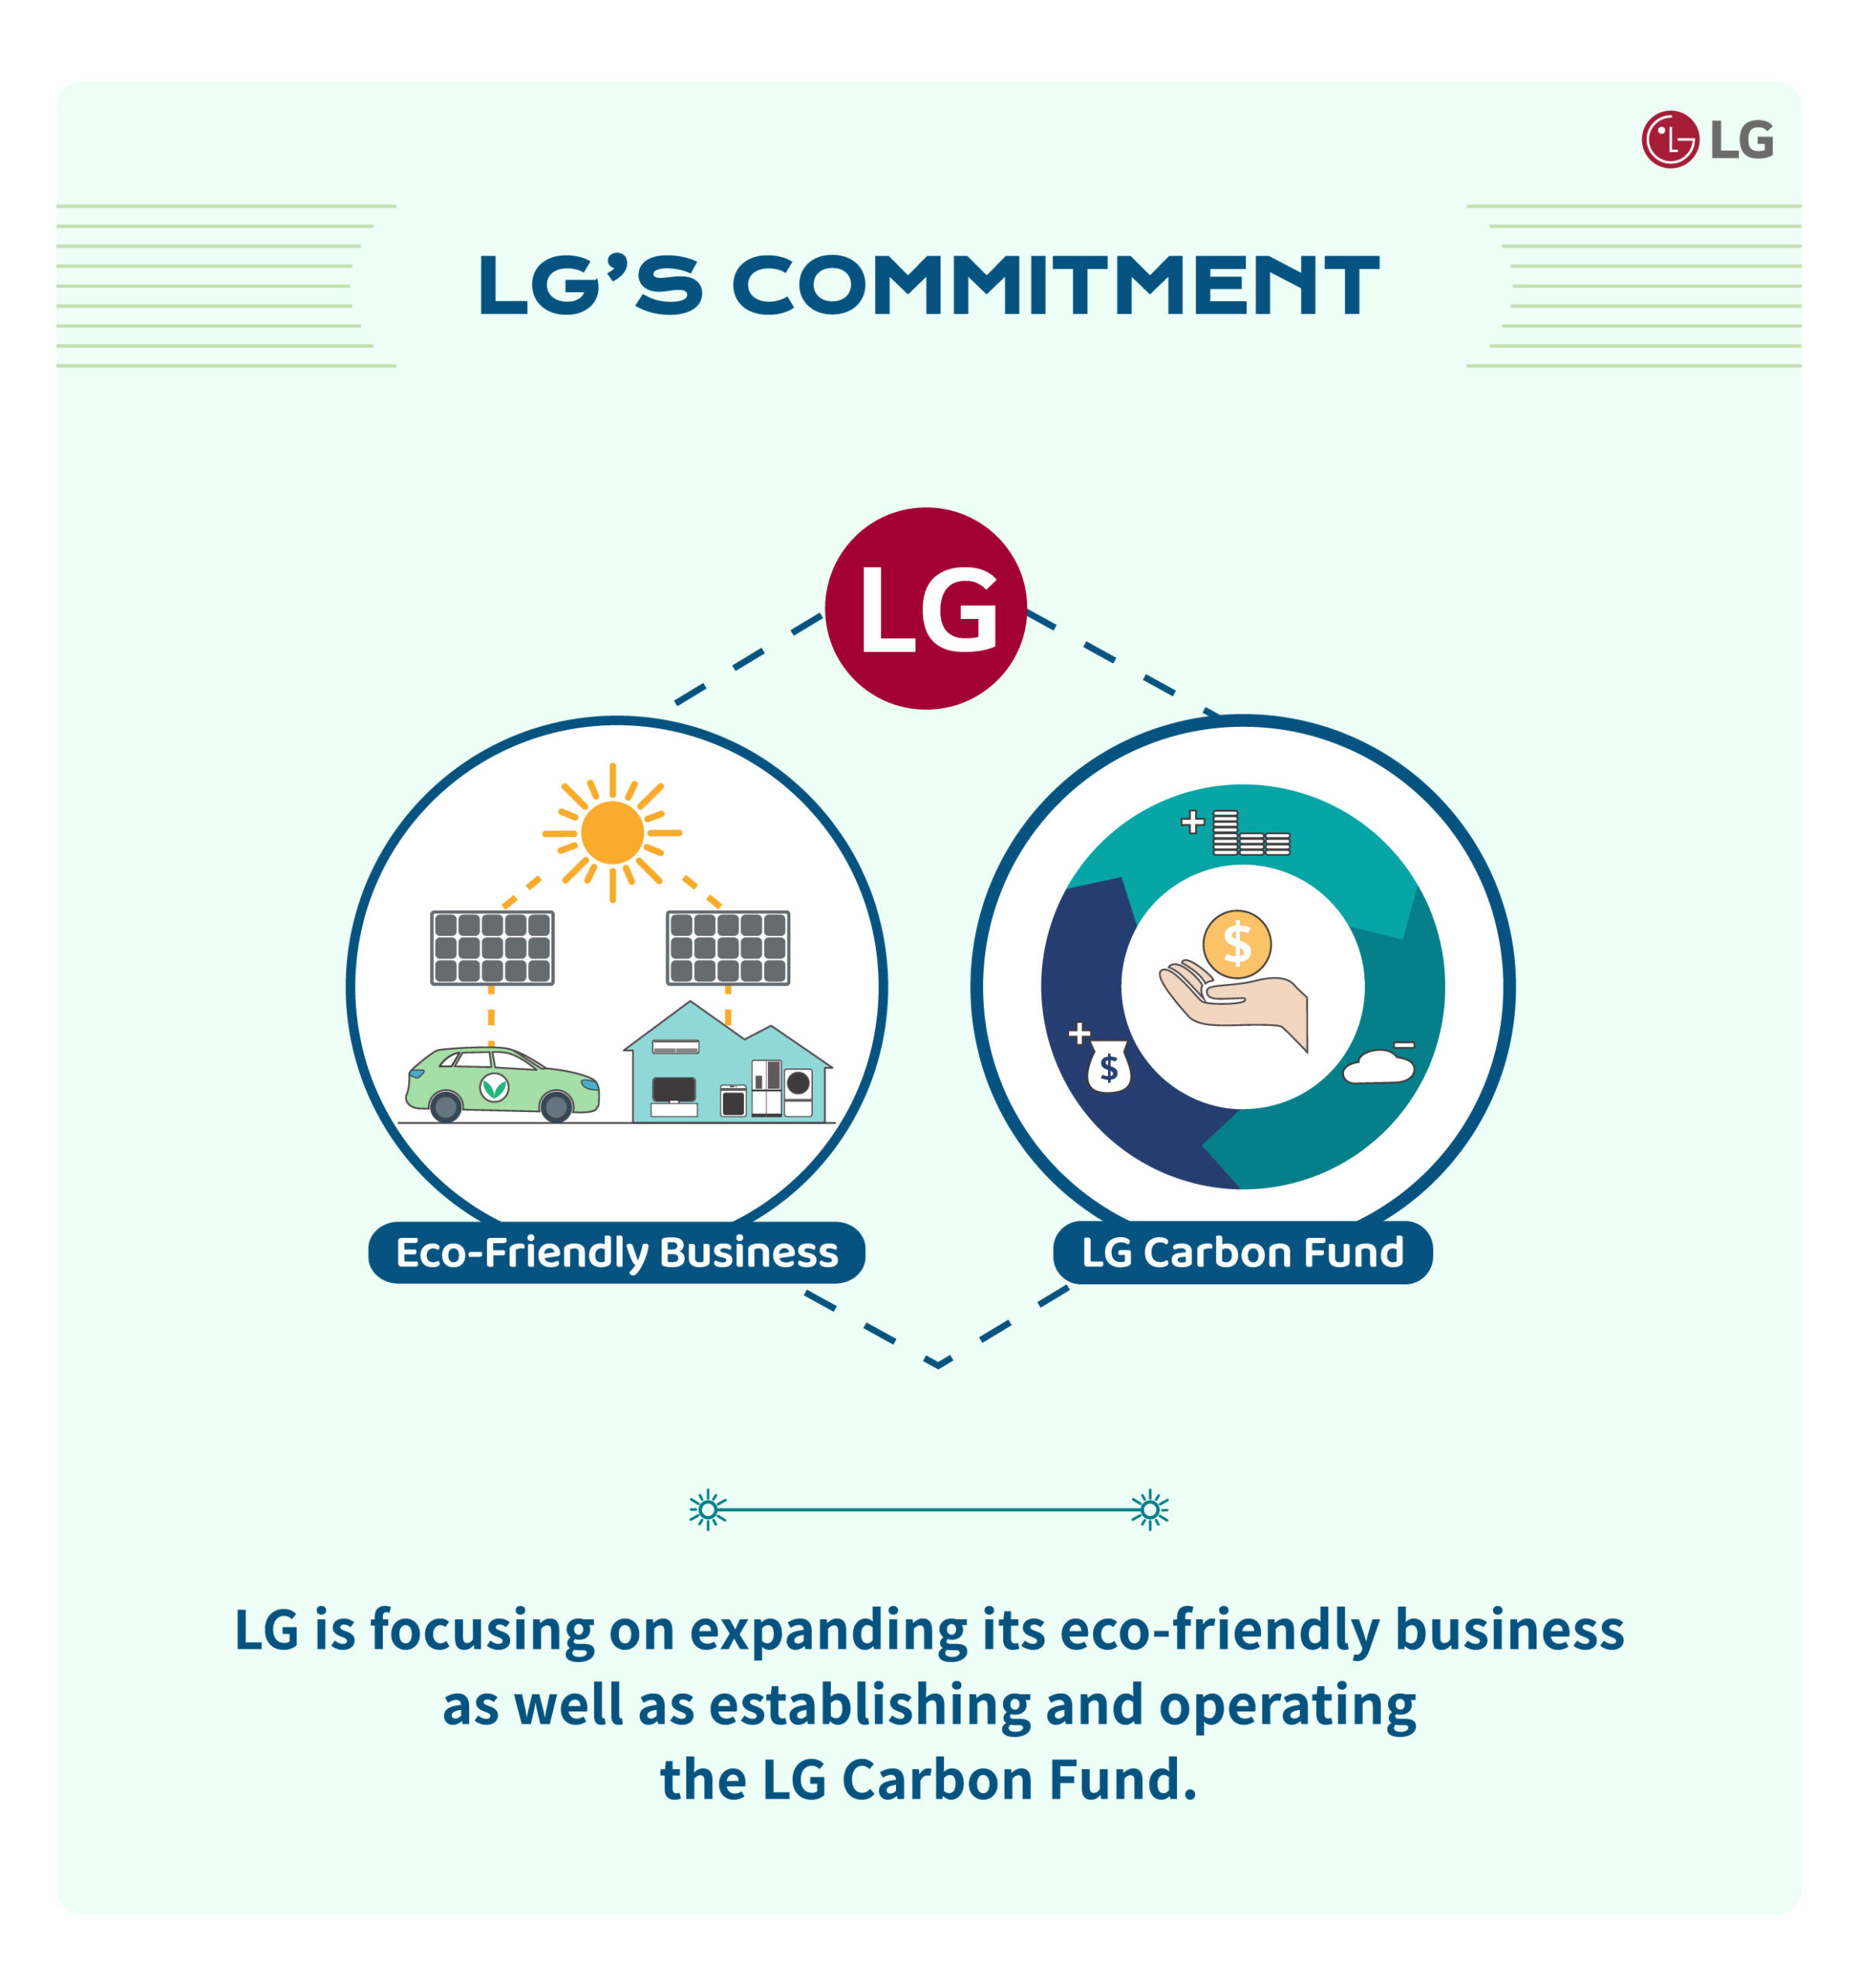 The page explaining LG's commitments to reducing carbon emissions through eco-friendly business and the LG Carbon Fund